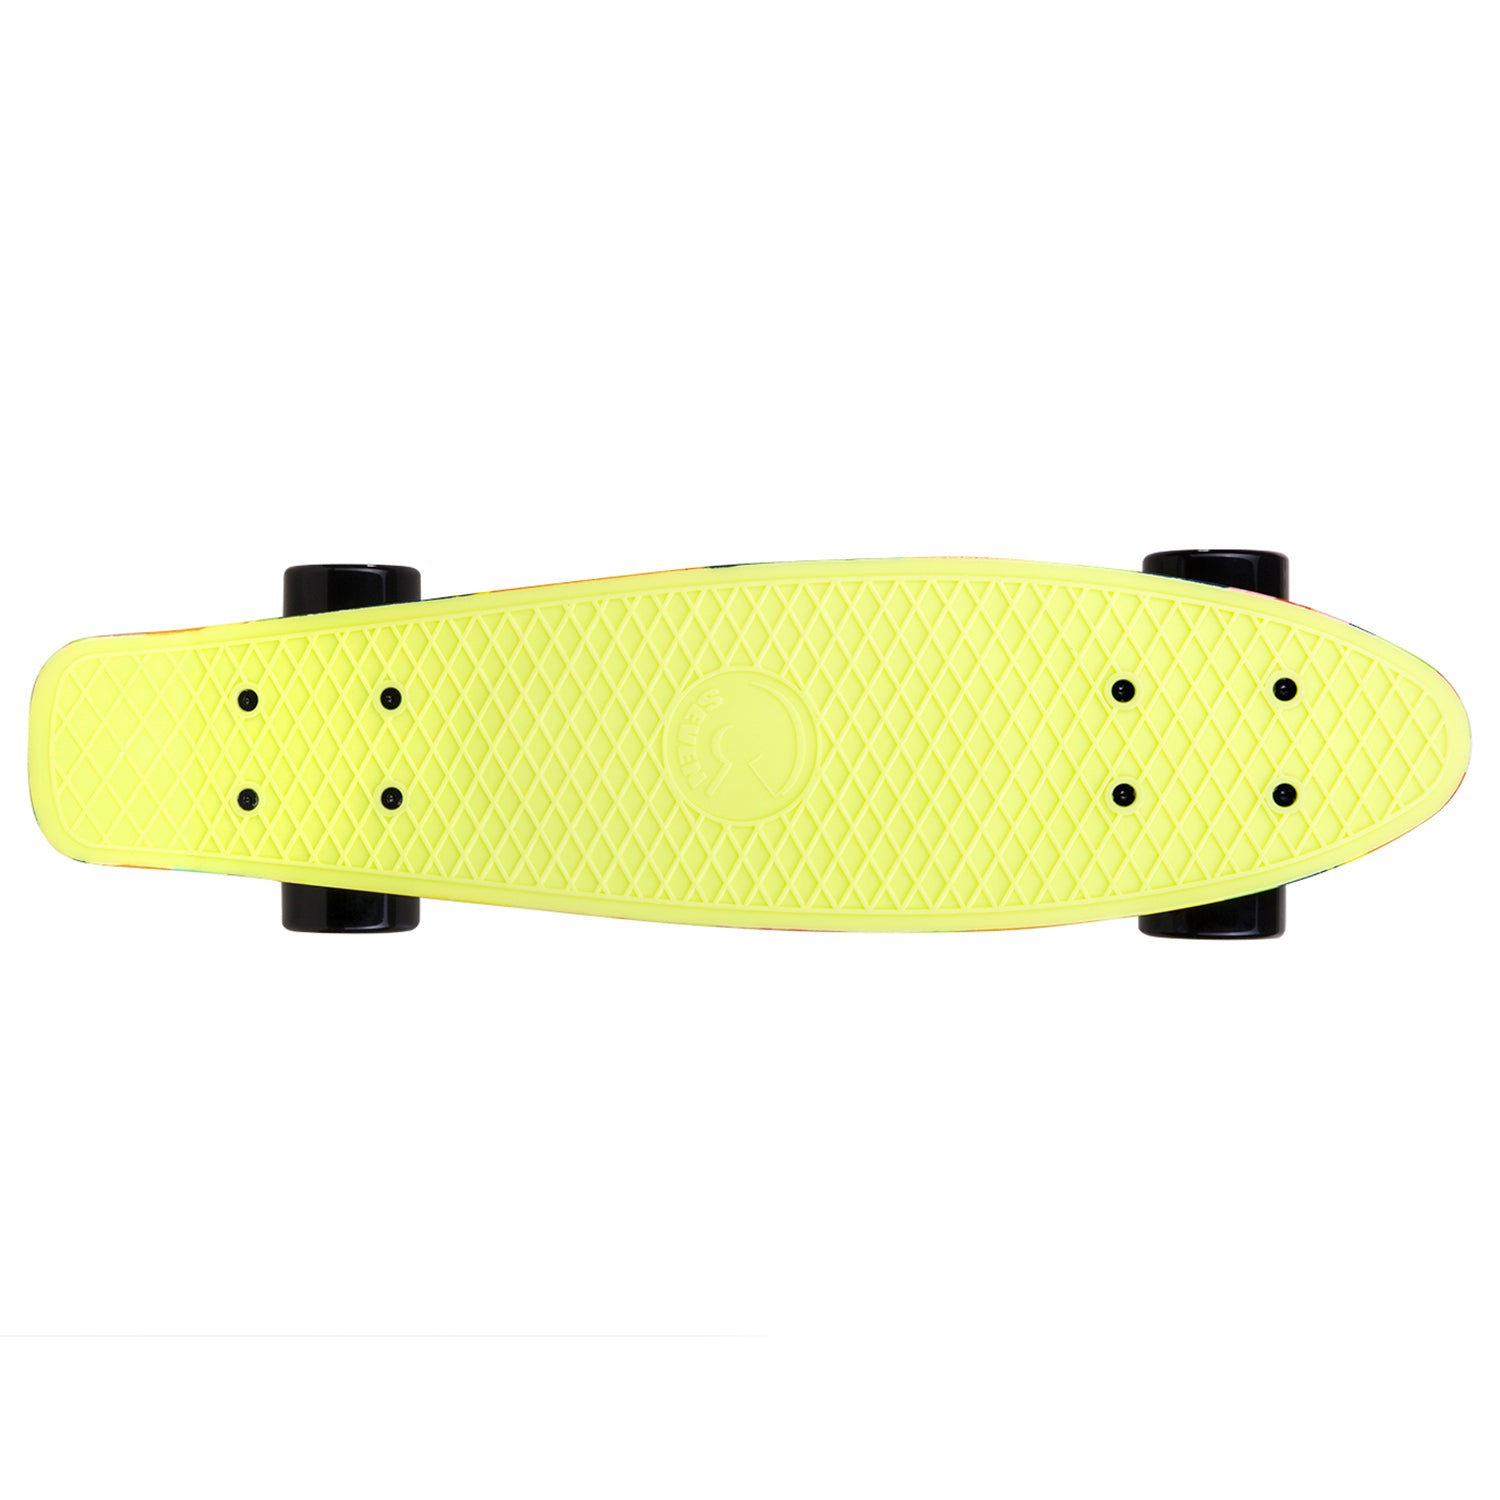 Ice Cream Mini Cruiser 22""